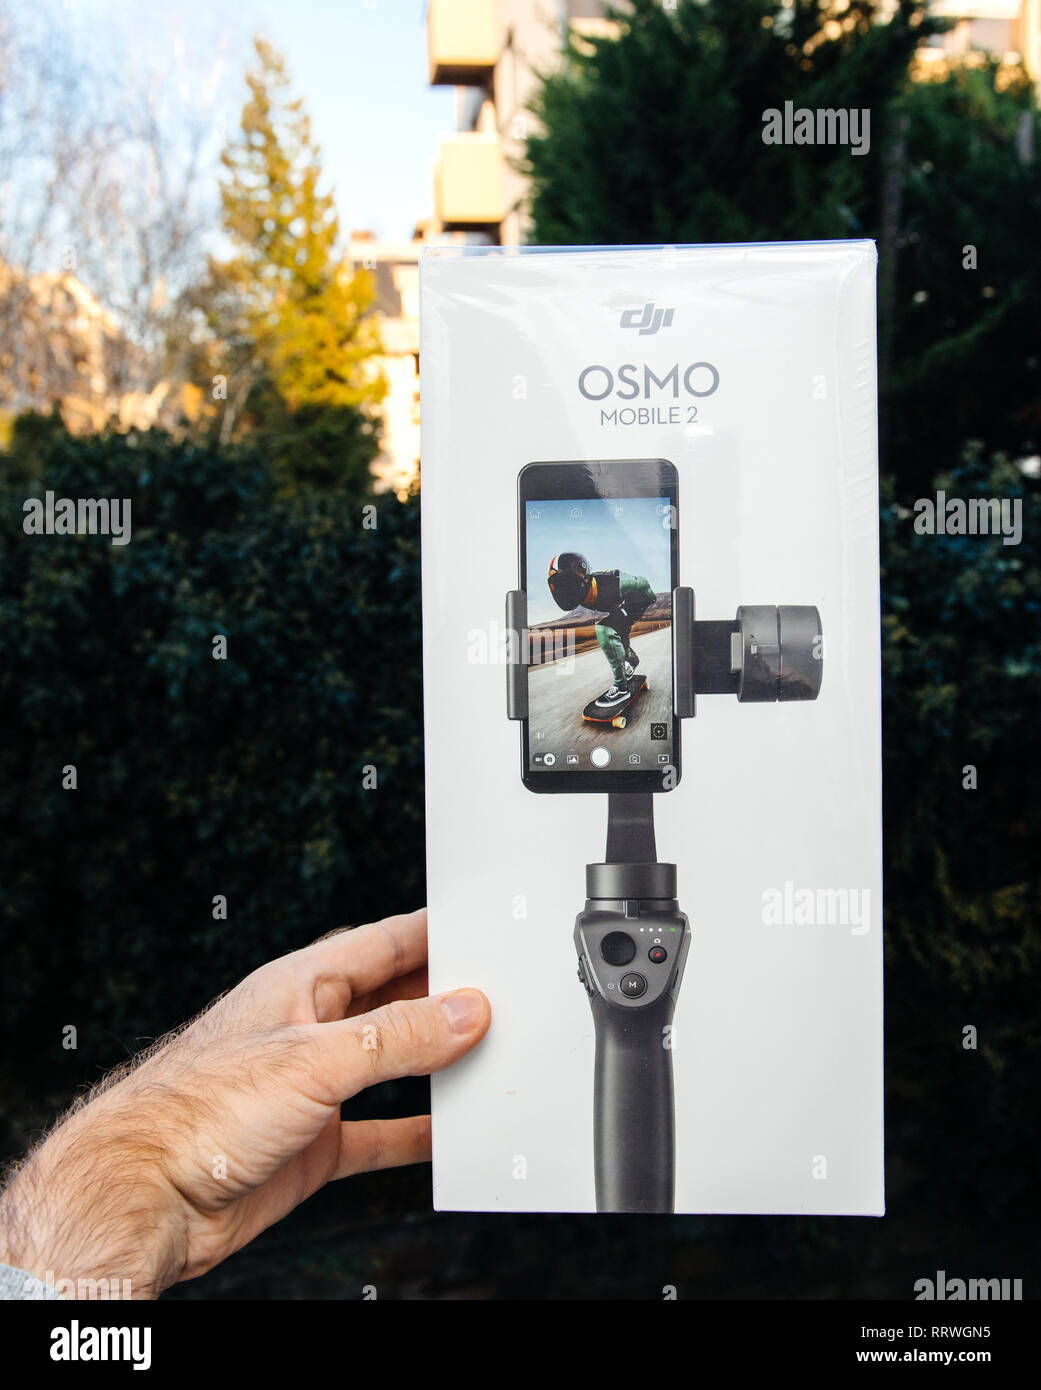 PARIS, FRANCE - NOV 22, 2018: Man hand holding in outdoor background new DJI Osmo Mobile 2 Smartphone Gimbal manufactured by the SZ DJI Technology Co., Ltd company vertical packaging - Stock Image